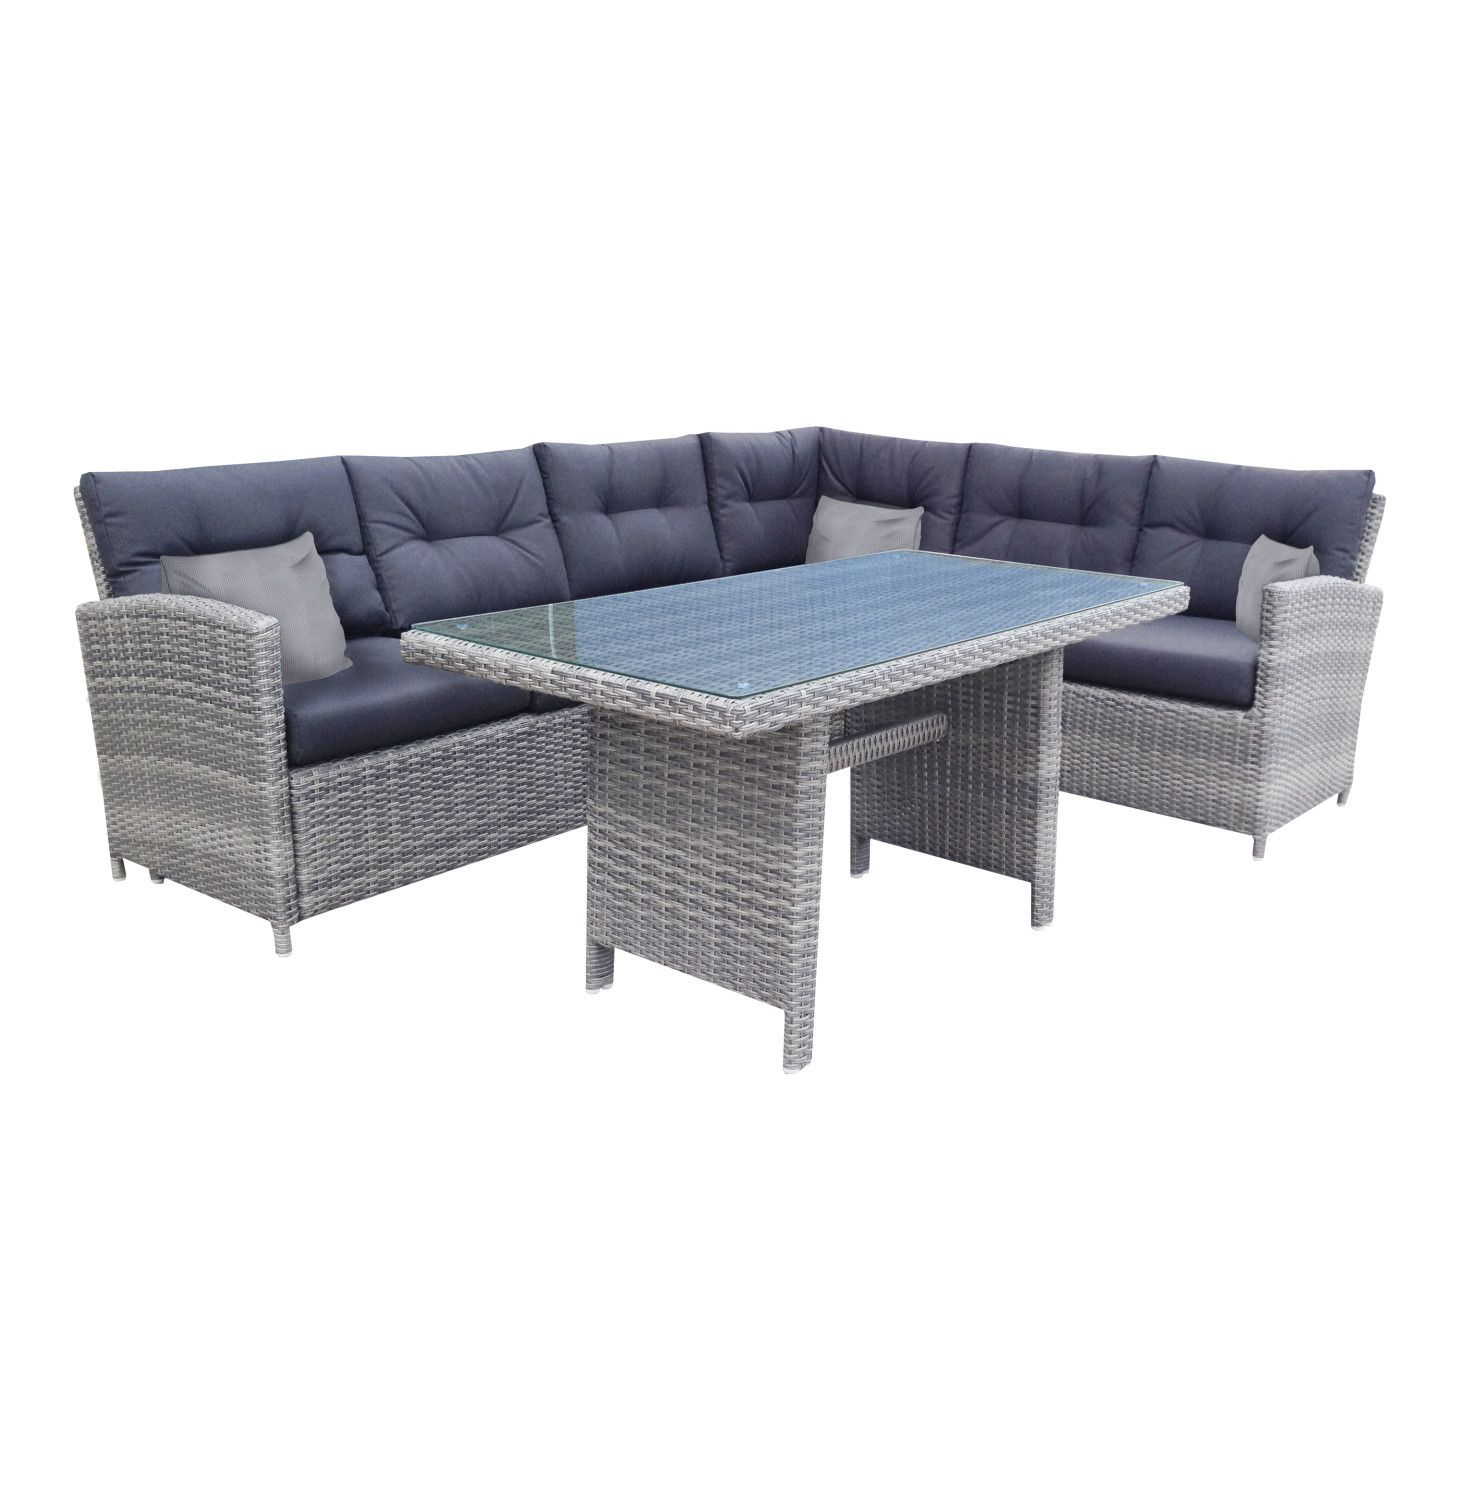 Makro Rattan Garden Furniture